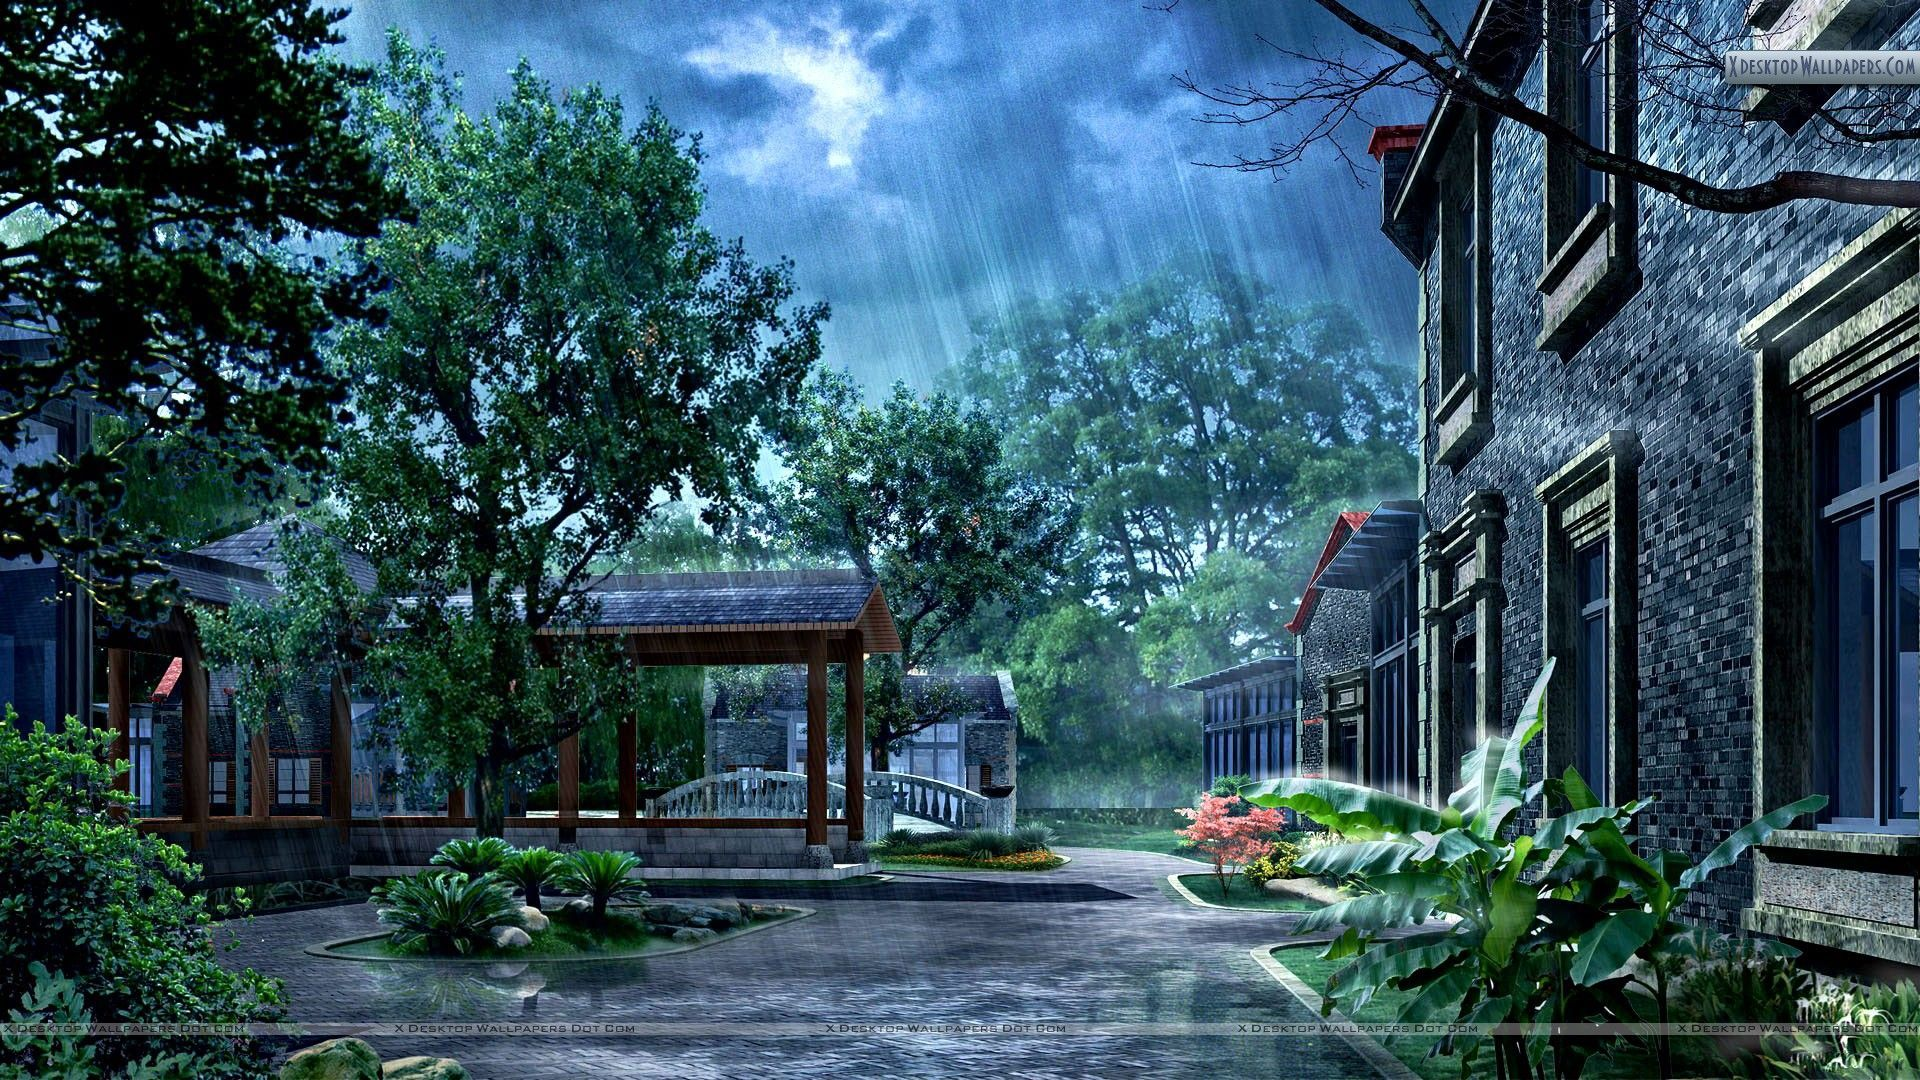 Rainy Day Wallpapers